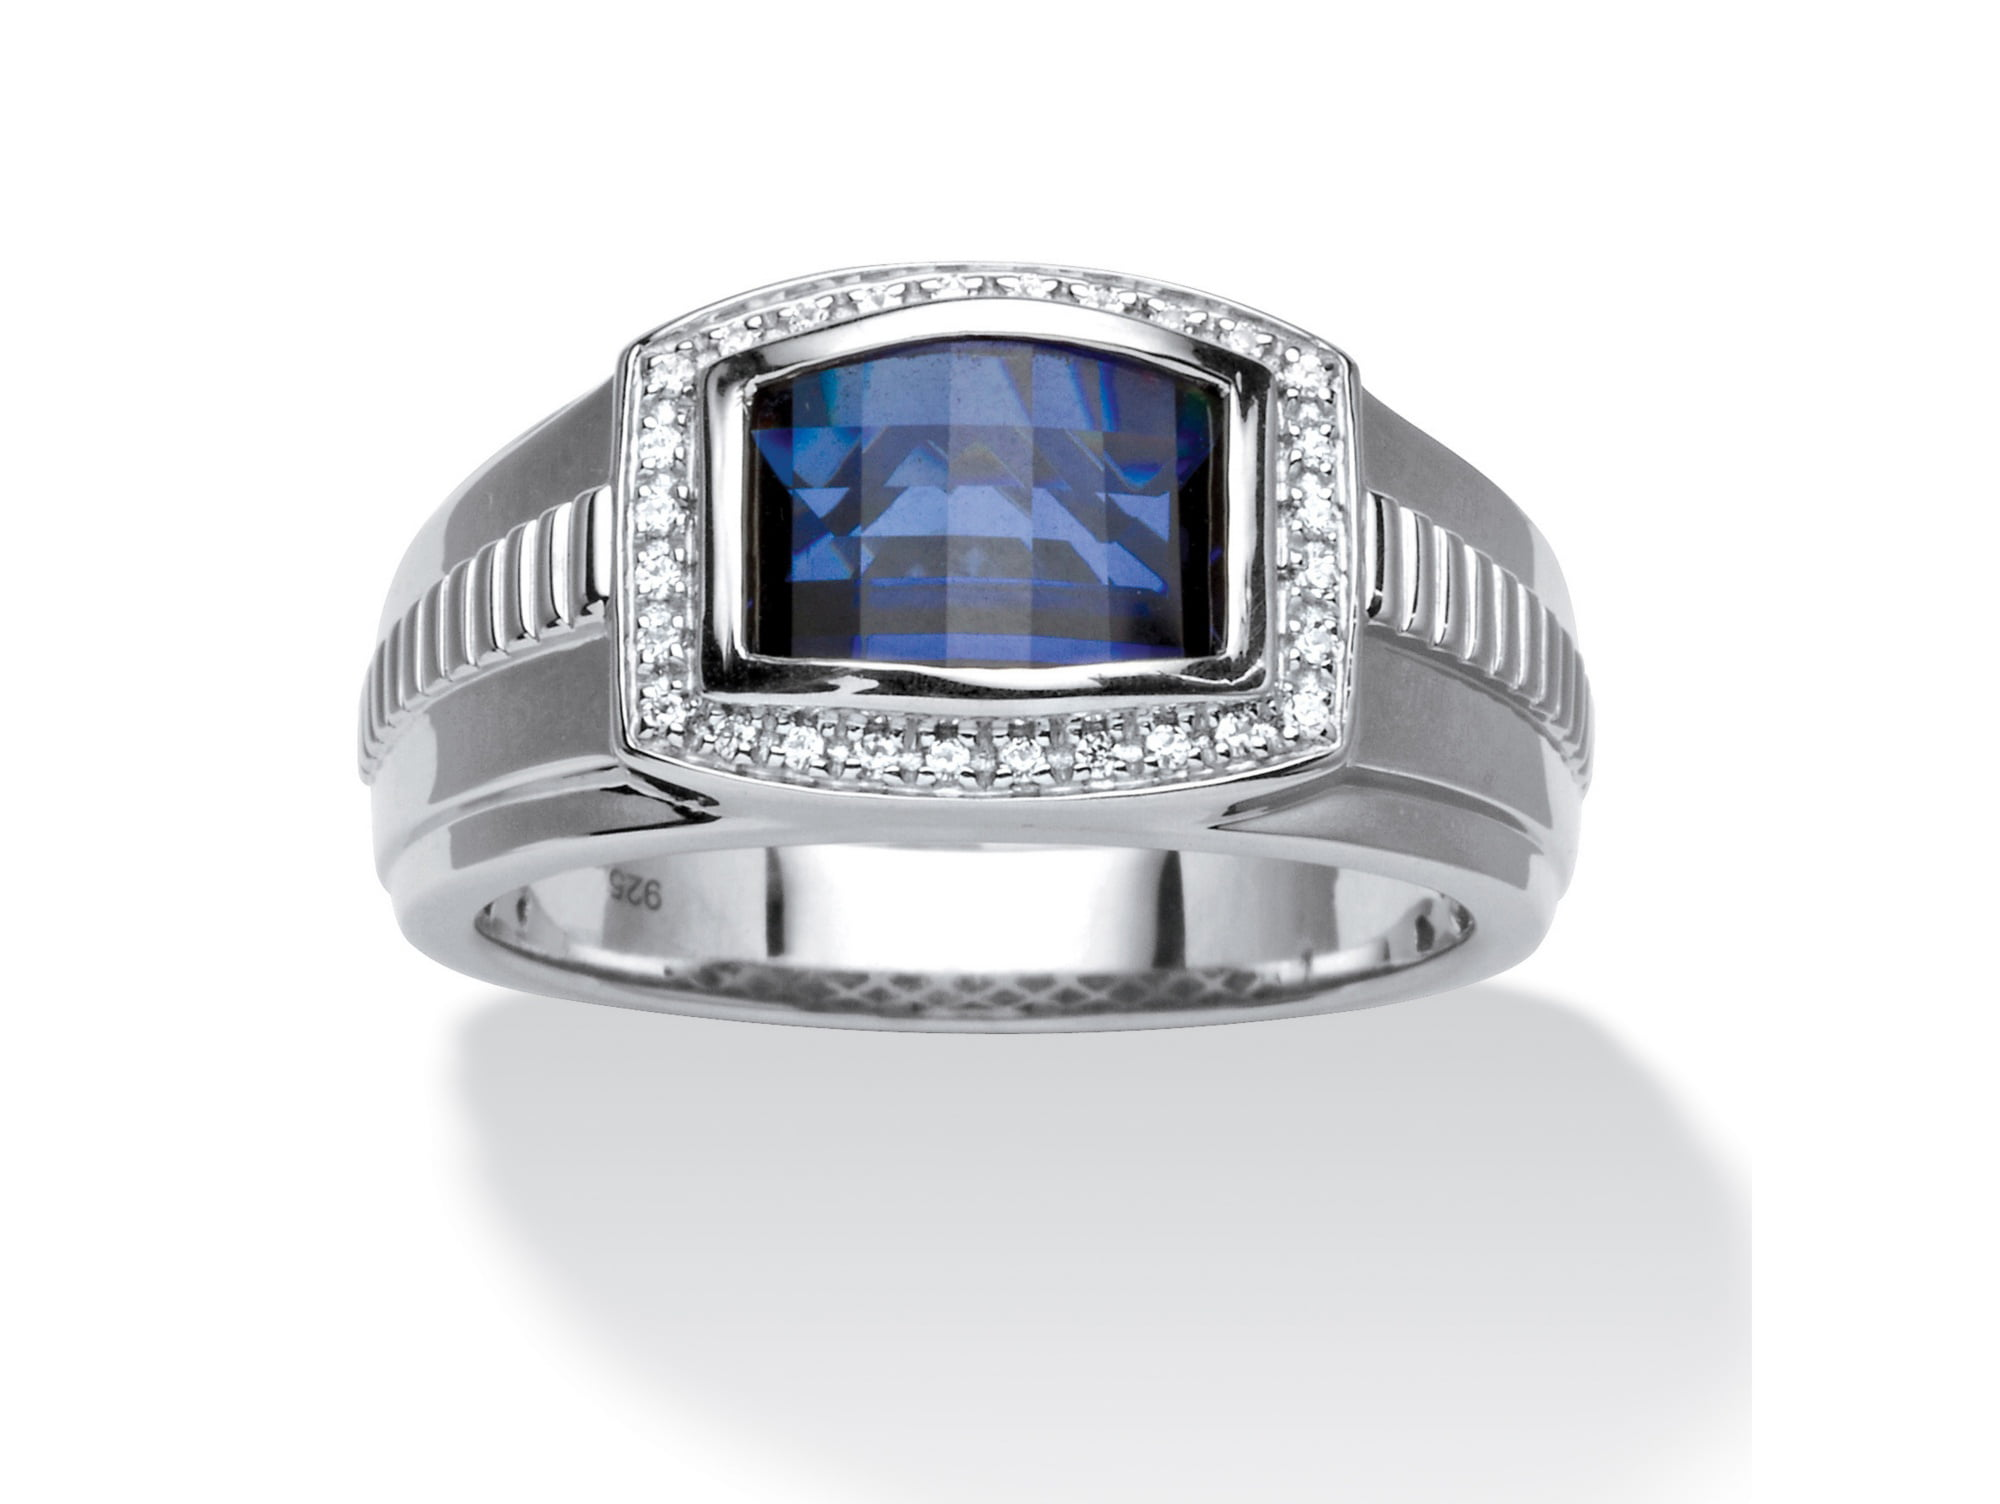 Men's Created Blue and White Sapphire Ring 2.94 TCW in Platinum over Sterling Silver by PalmBeach Jewelry